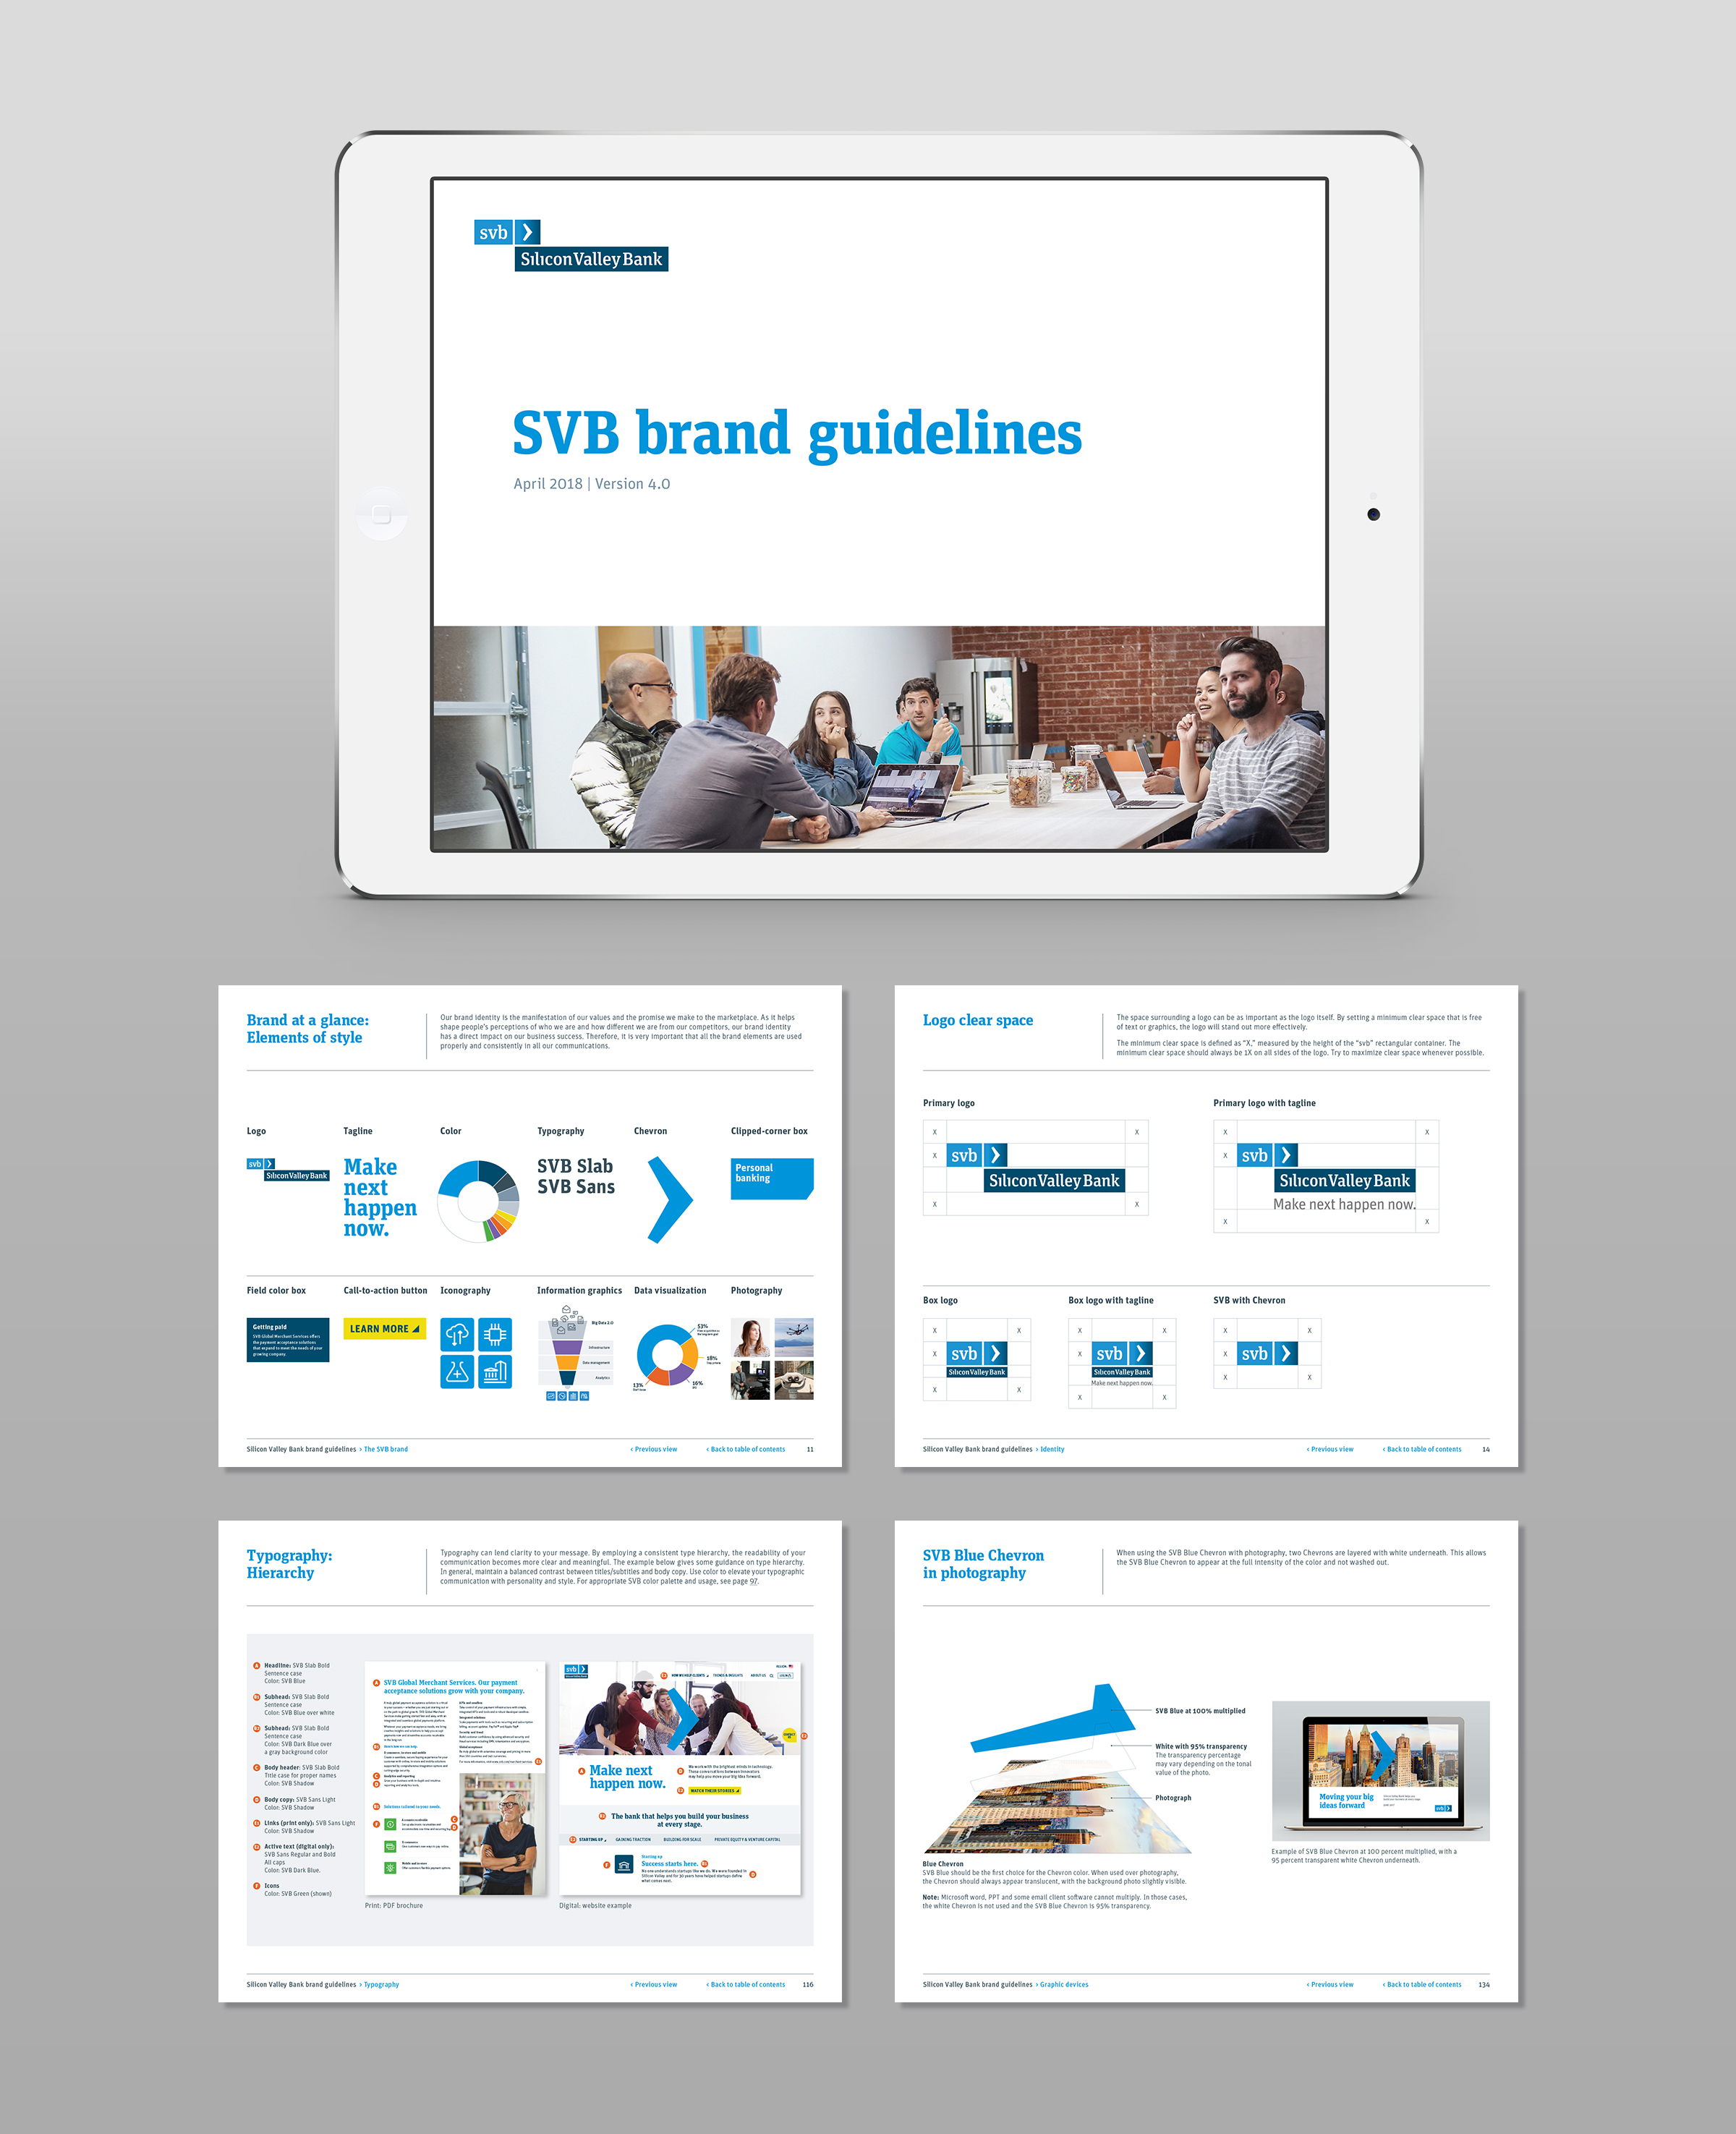 SVB_Brand_Guidelines_Pages-Mock-up v2.jpg